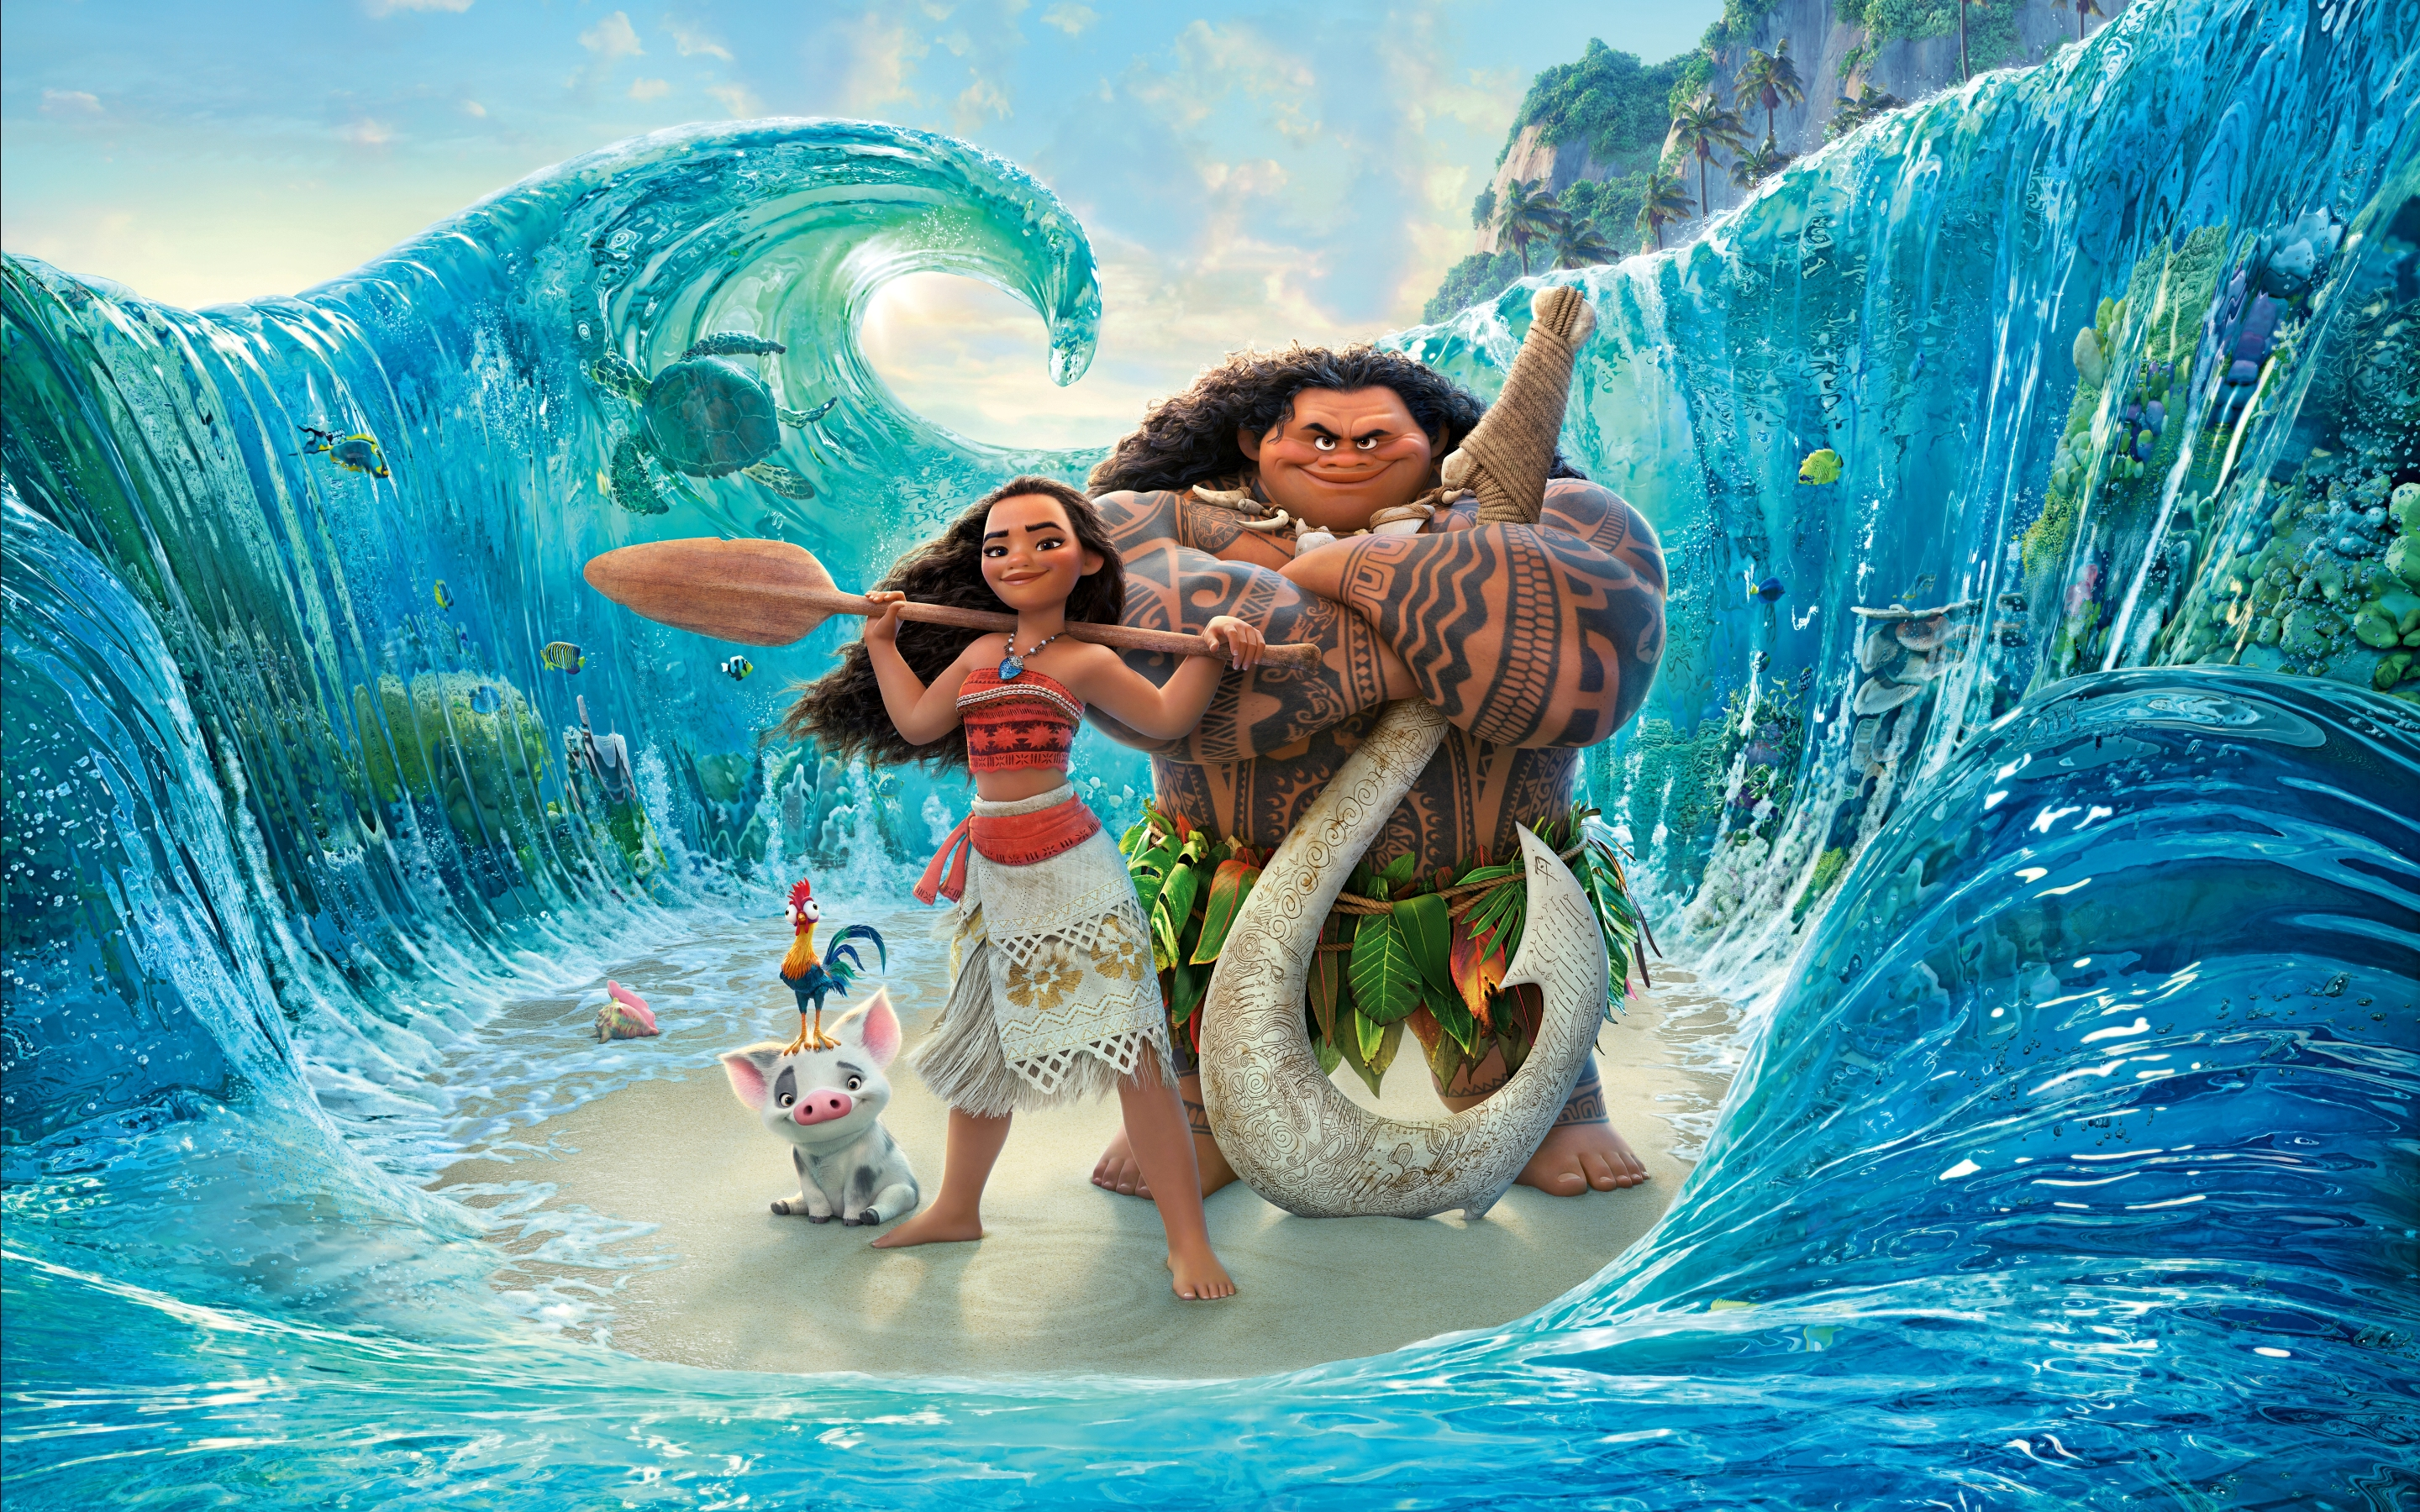 2048x2048 Disney Moana 4k Ipad Air Hd 4k Wallpapers Images Backgrounds Photos And Pictures